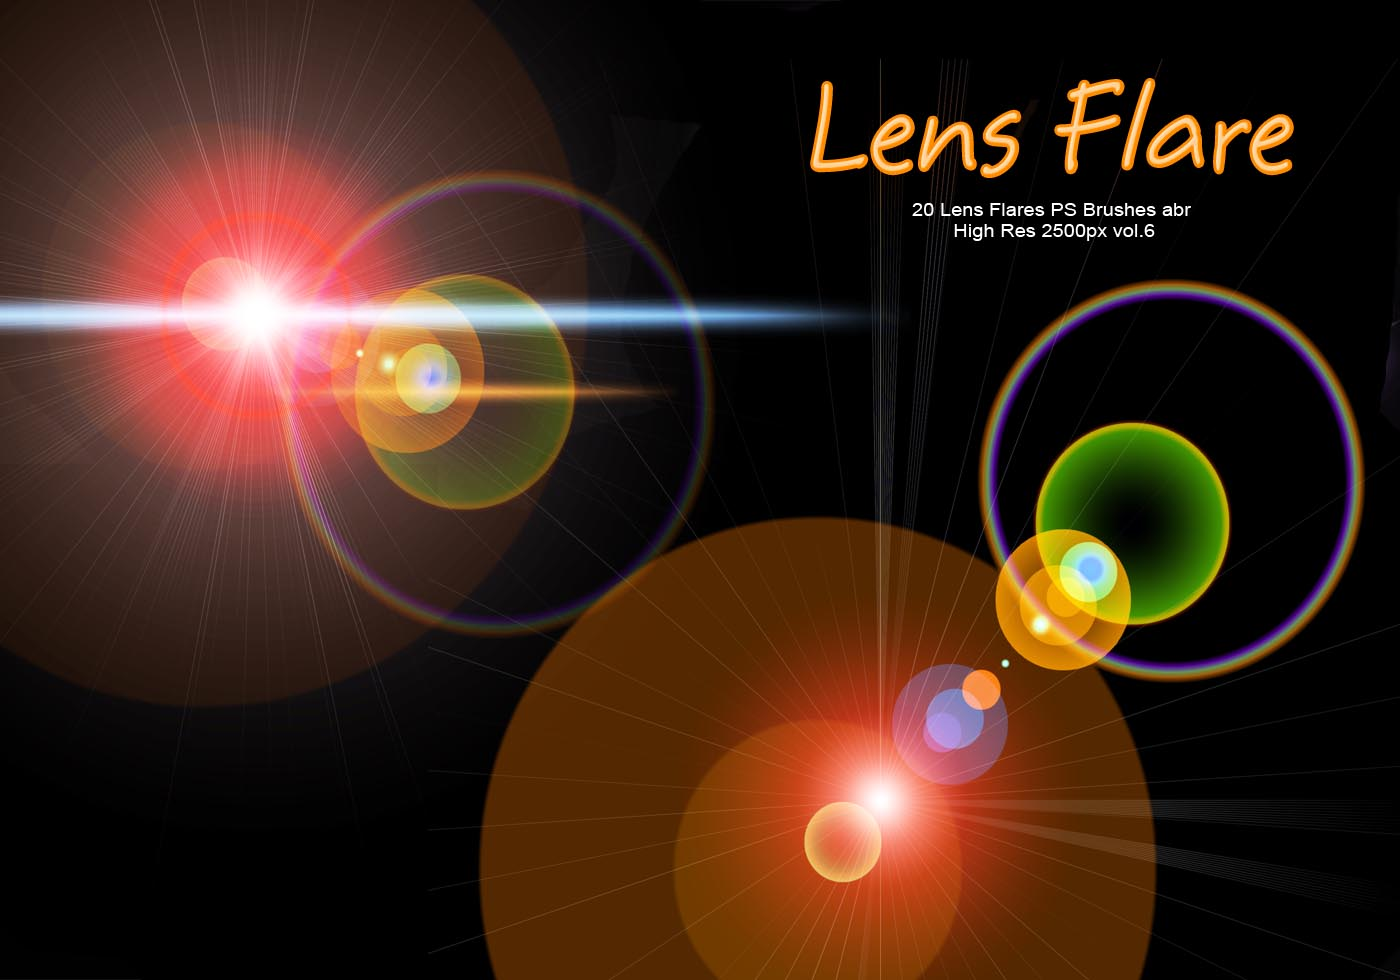 lens flare photoshop tutorial